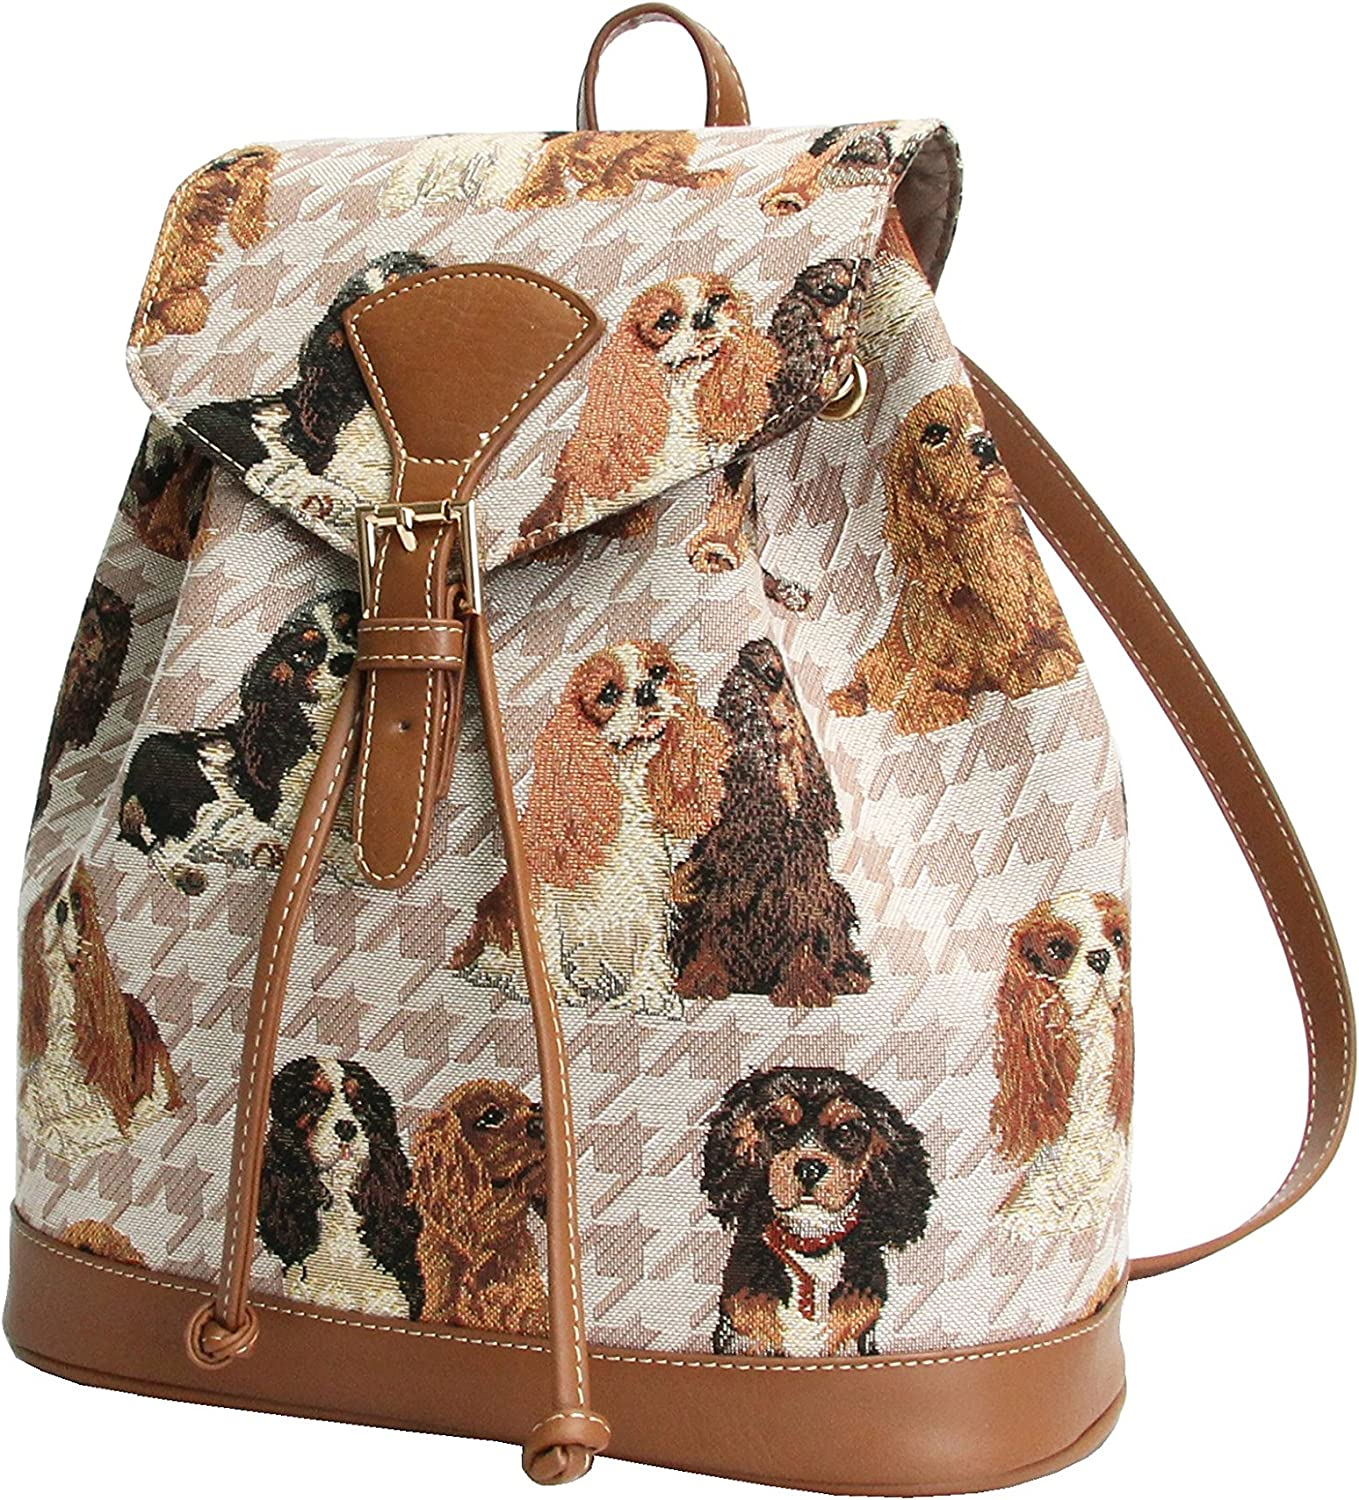 Signare Tapestry Fashion Backpack Rucksack for Women with Cavalier King Charles Spaniel Dog Design RUCK-KGCS